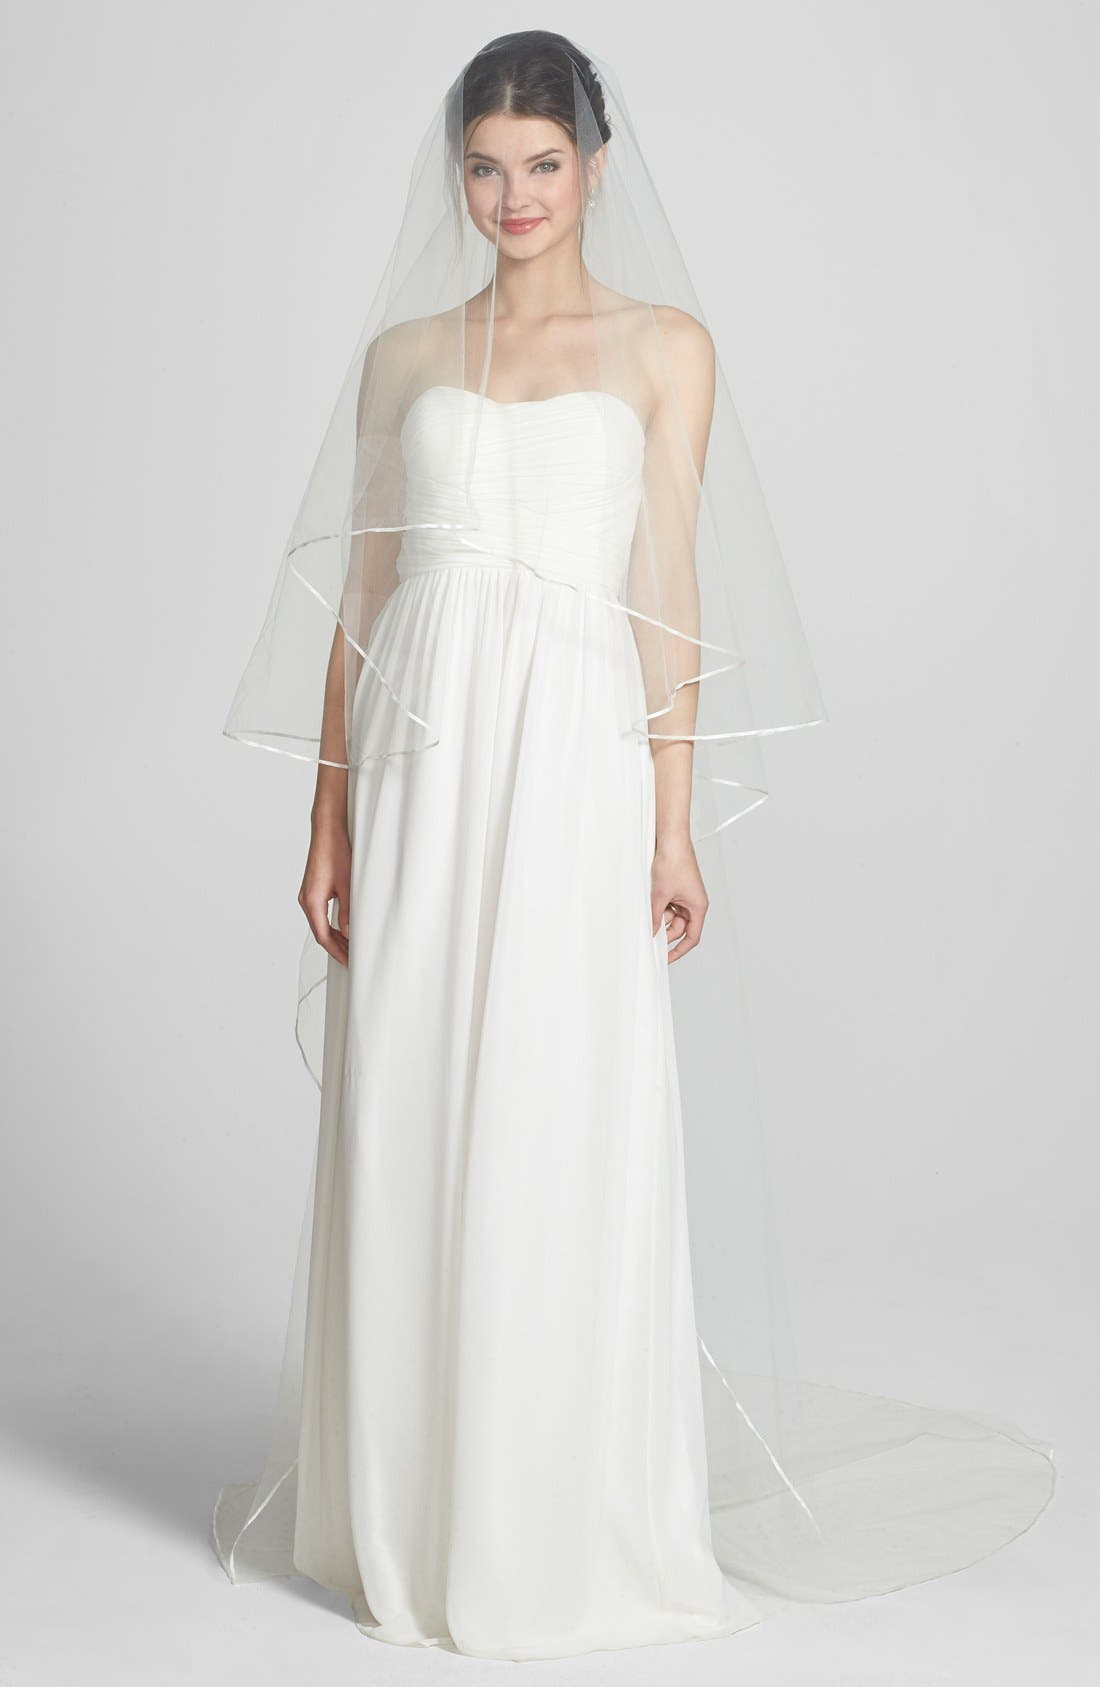 'Mable' Two-Tier Satin Trim Cathedral Veil,                             Main thumbnail 1, color,                             Ivory